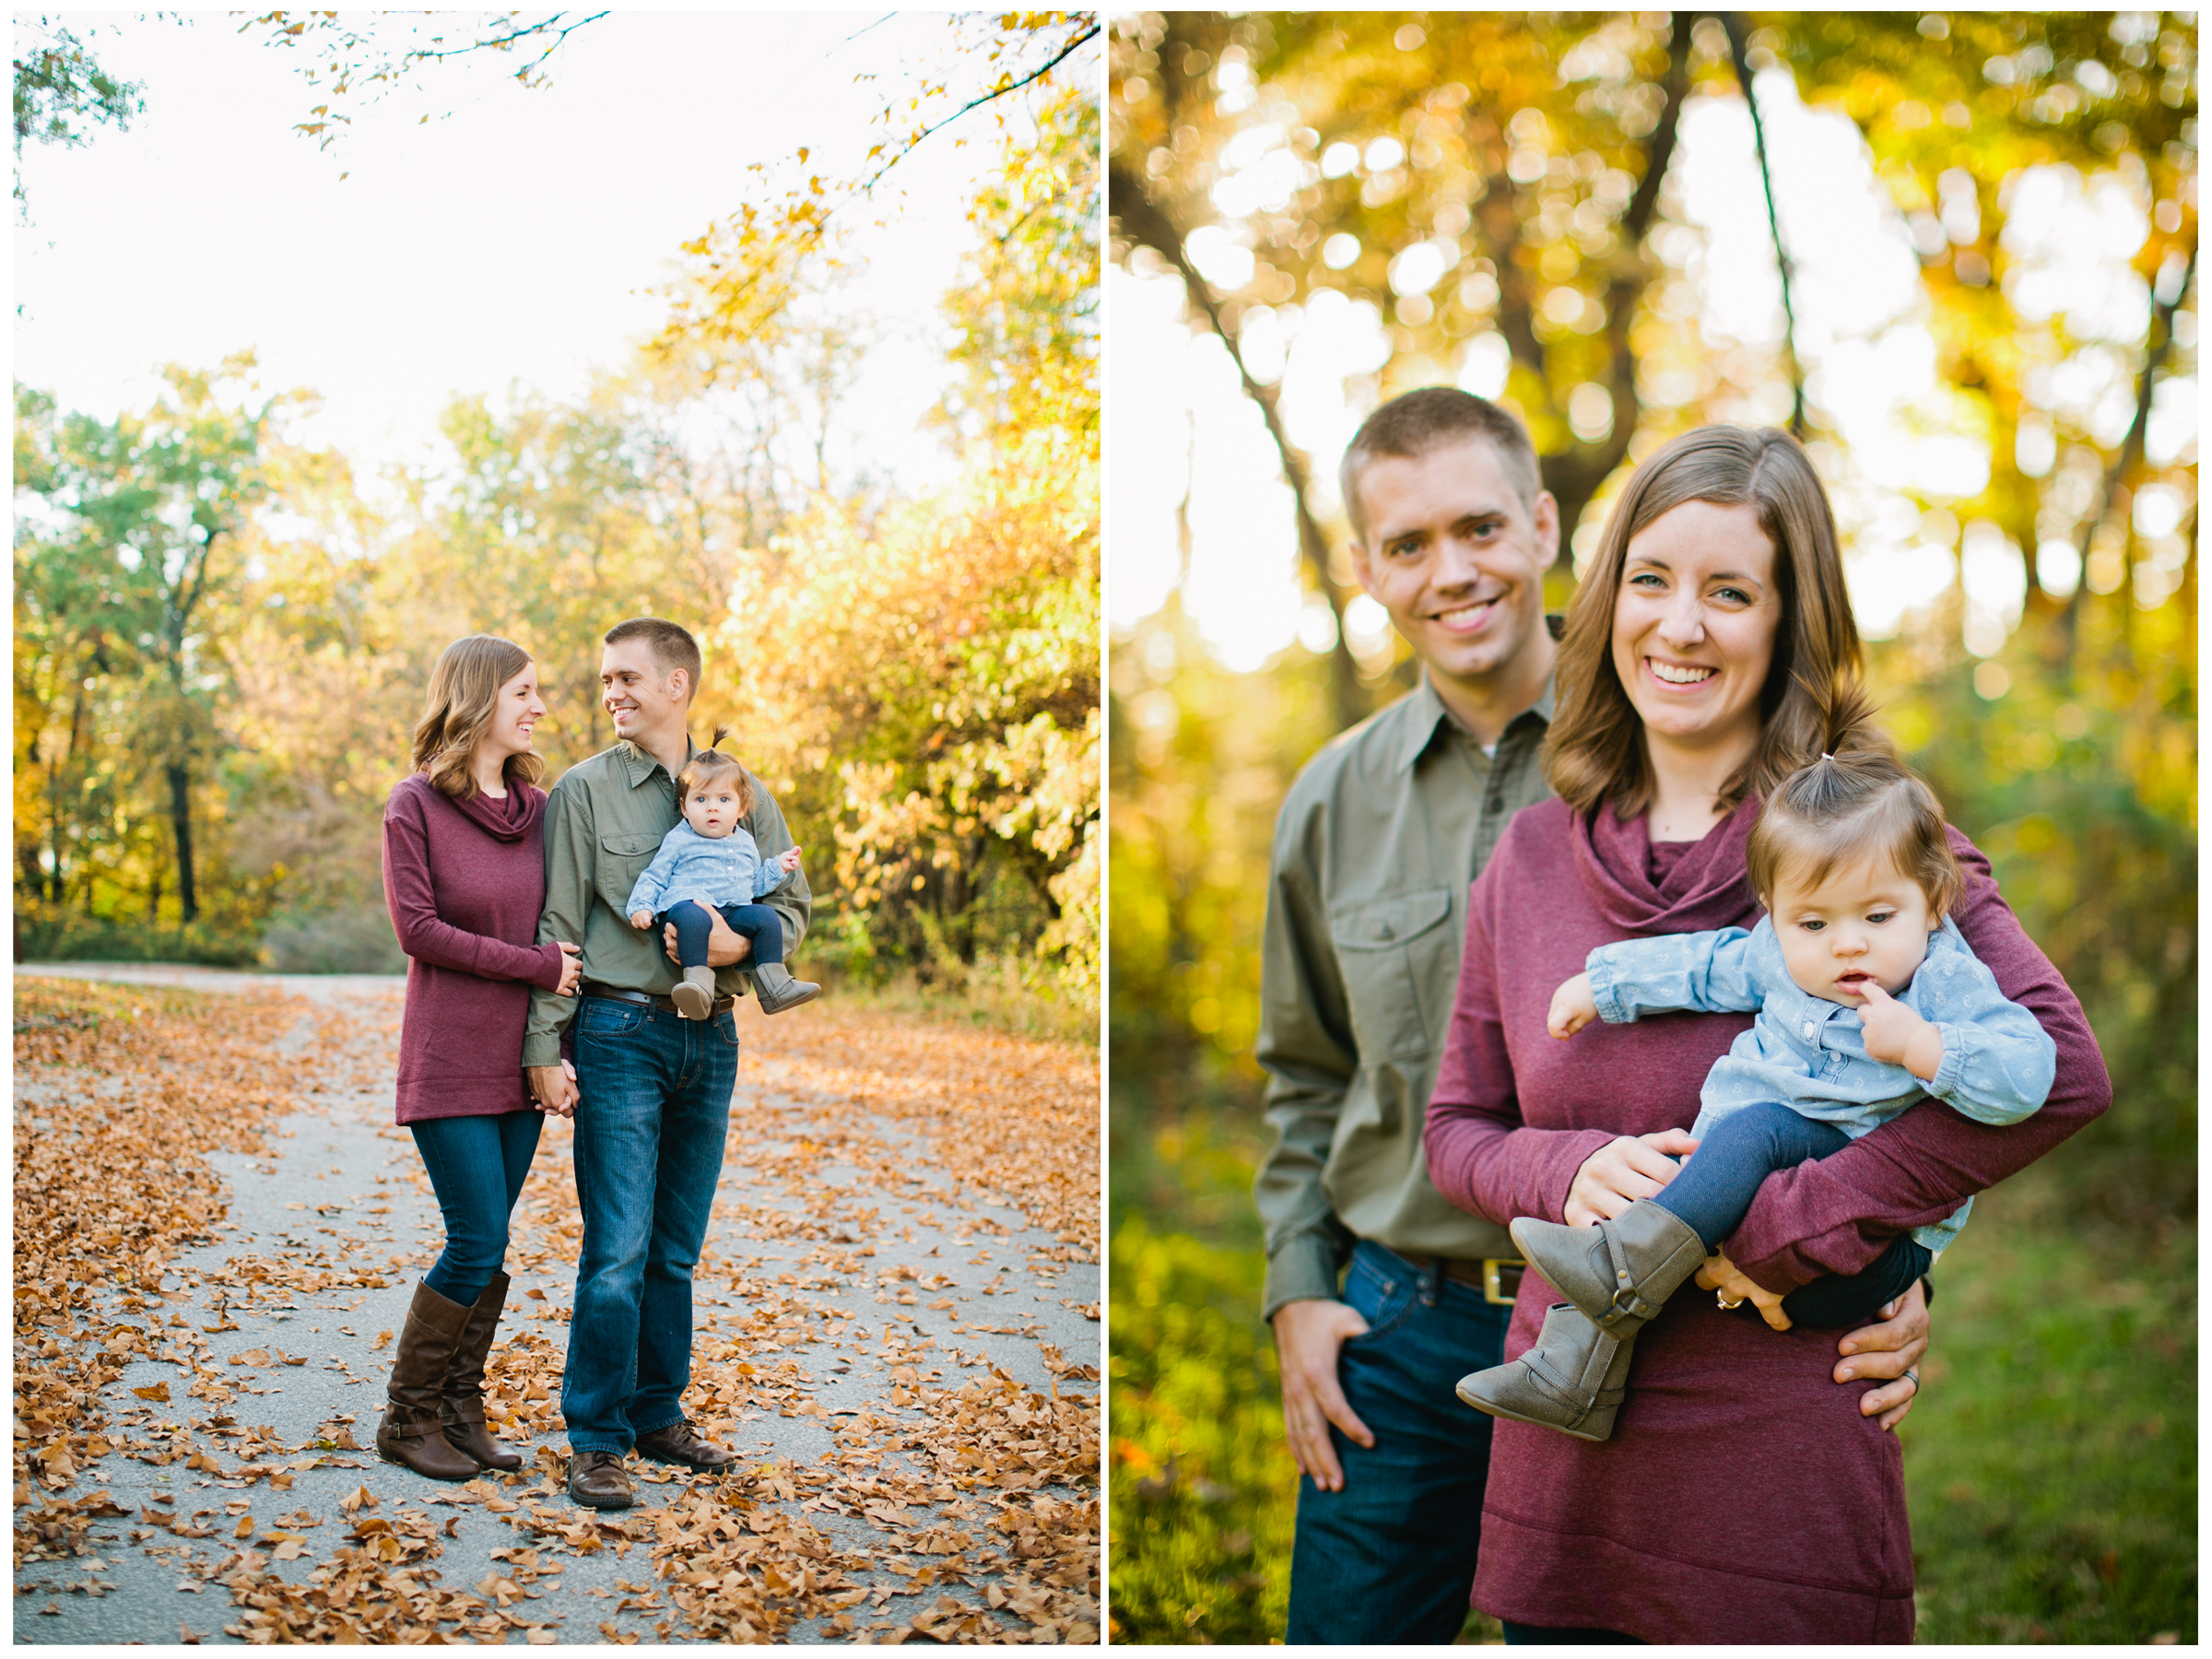 Ankeny Saylorville family photos wearing blue jeans, brown riding boots, and maroon and green shirts with baby girl